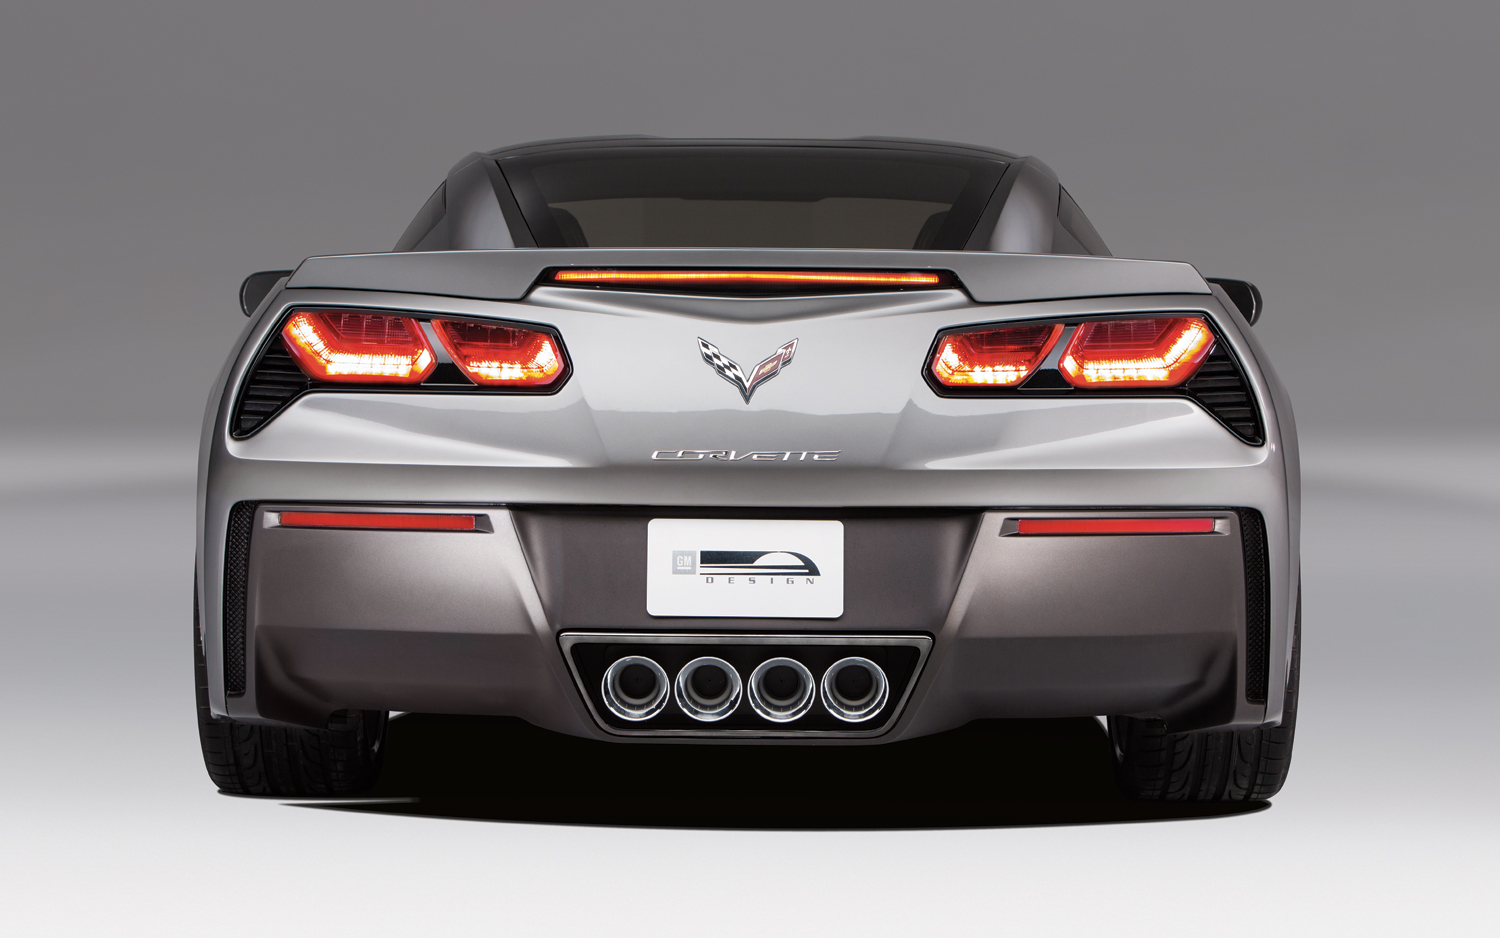 2014 C7 Corvette Stingray Unveiled Bleucartel